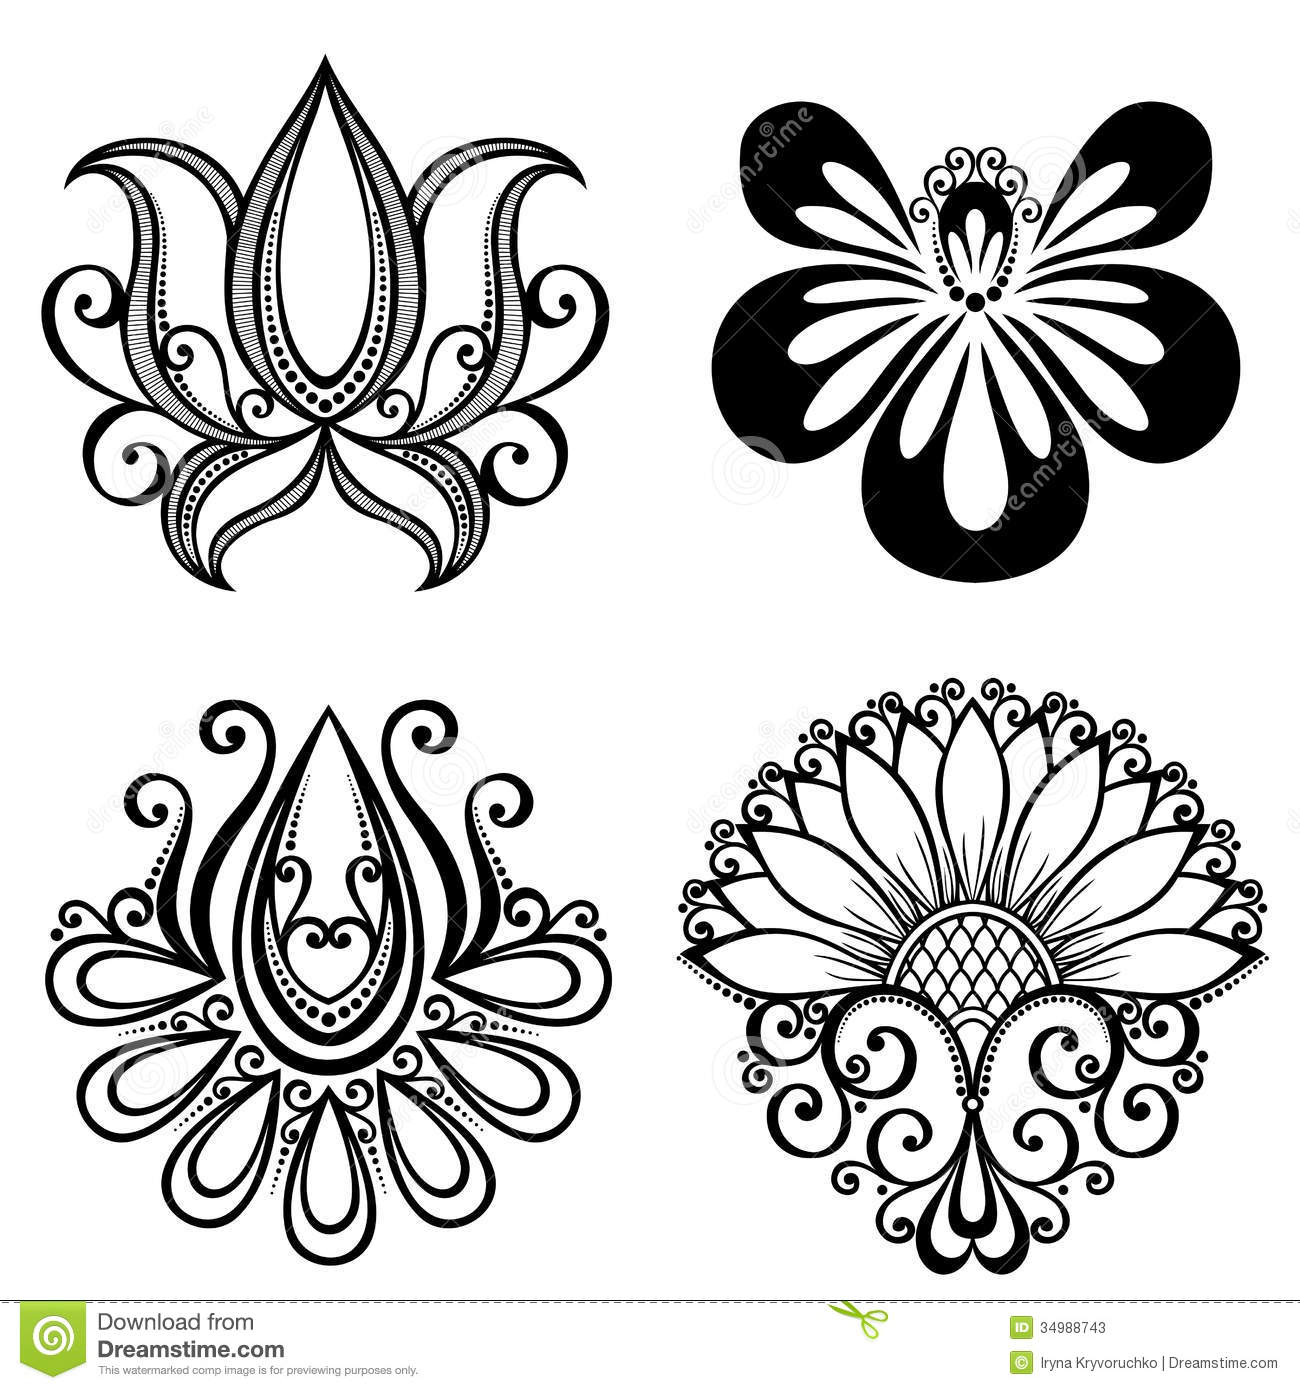 Art Deco Flower Design Displaying 17 Images For Art Deco Flower Design